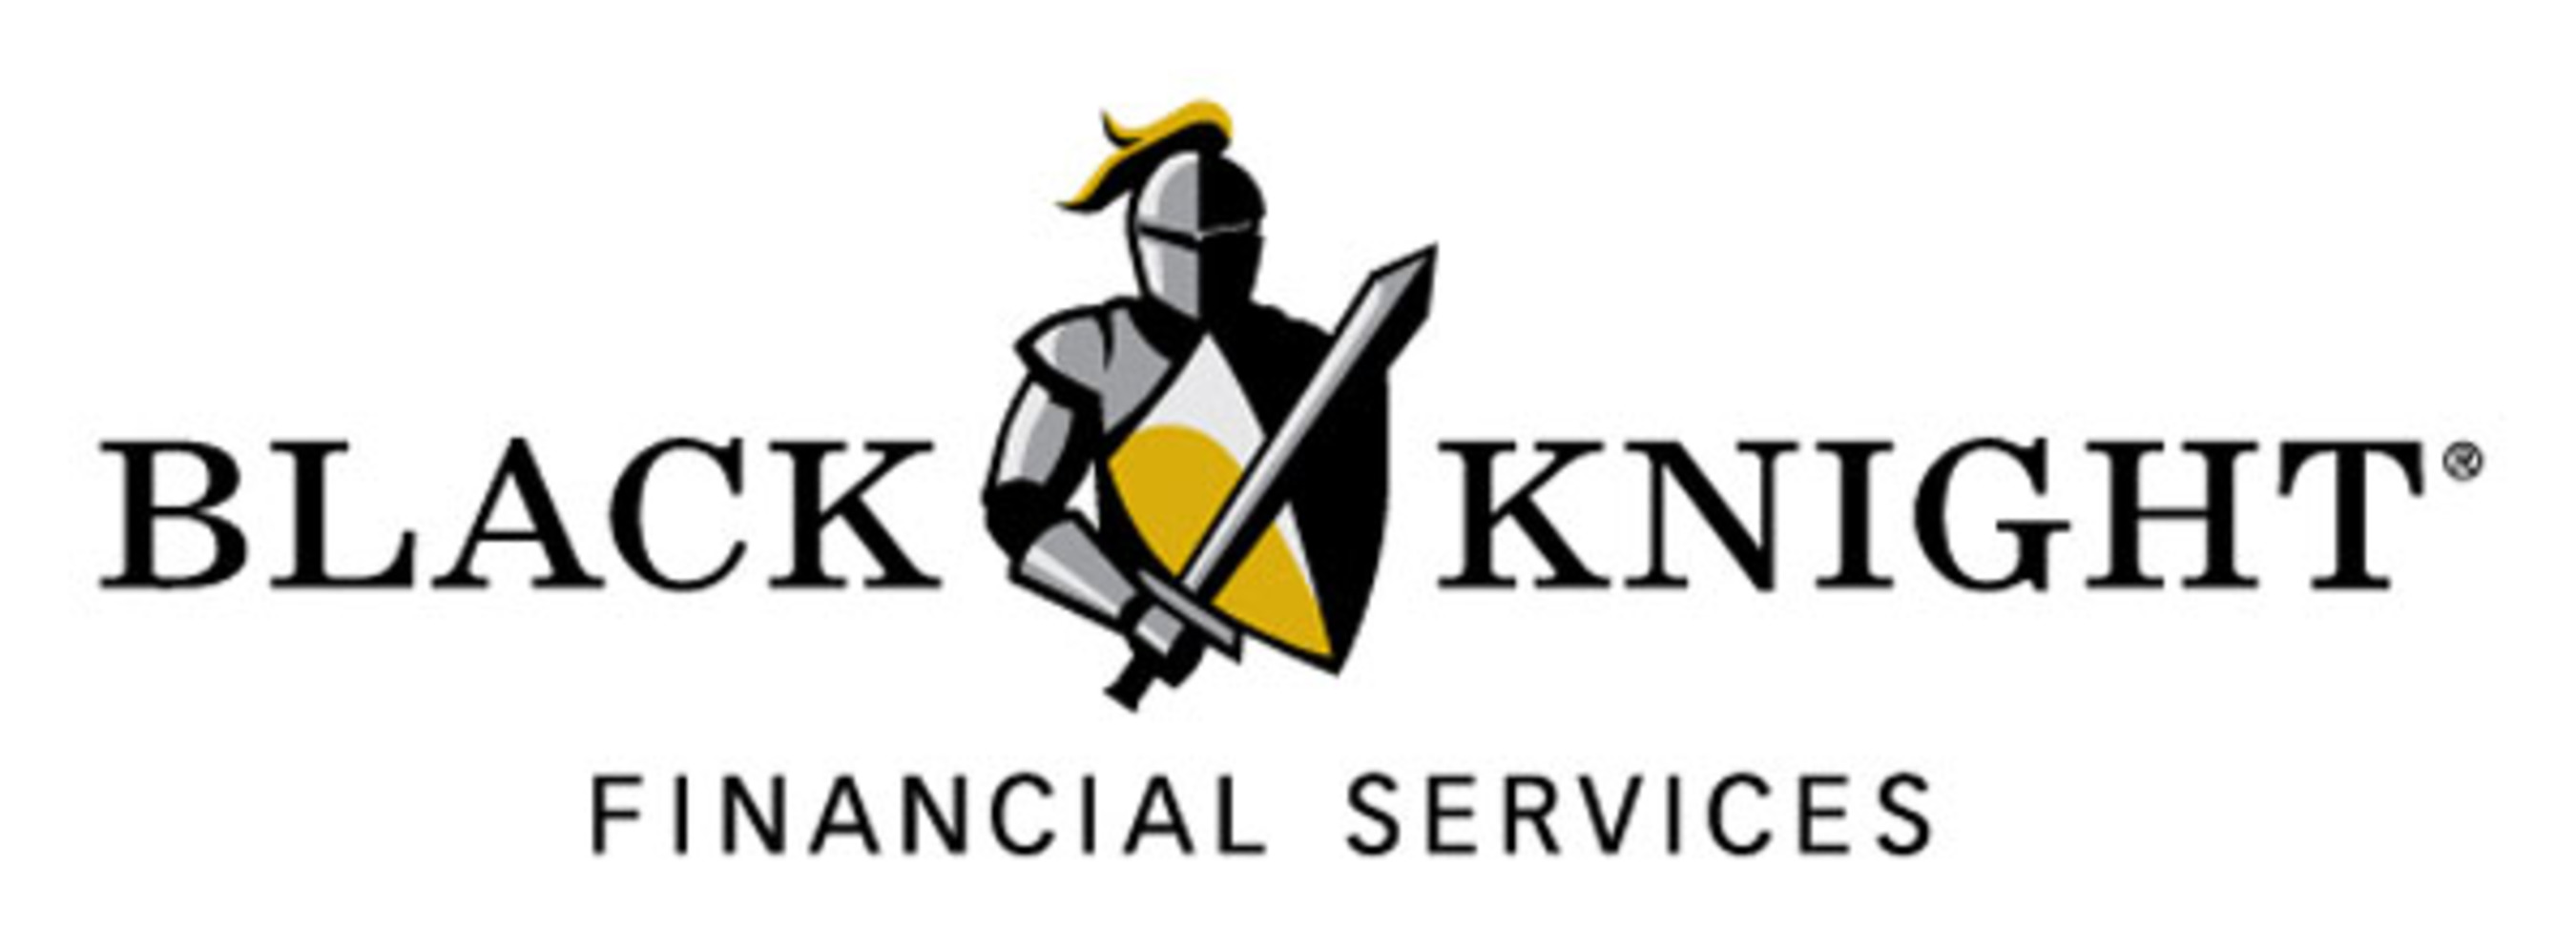 Black Knight Financial Services logo (PRNewsFoto/Black Knight Financial Services)